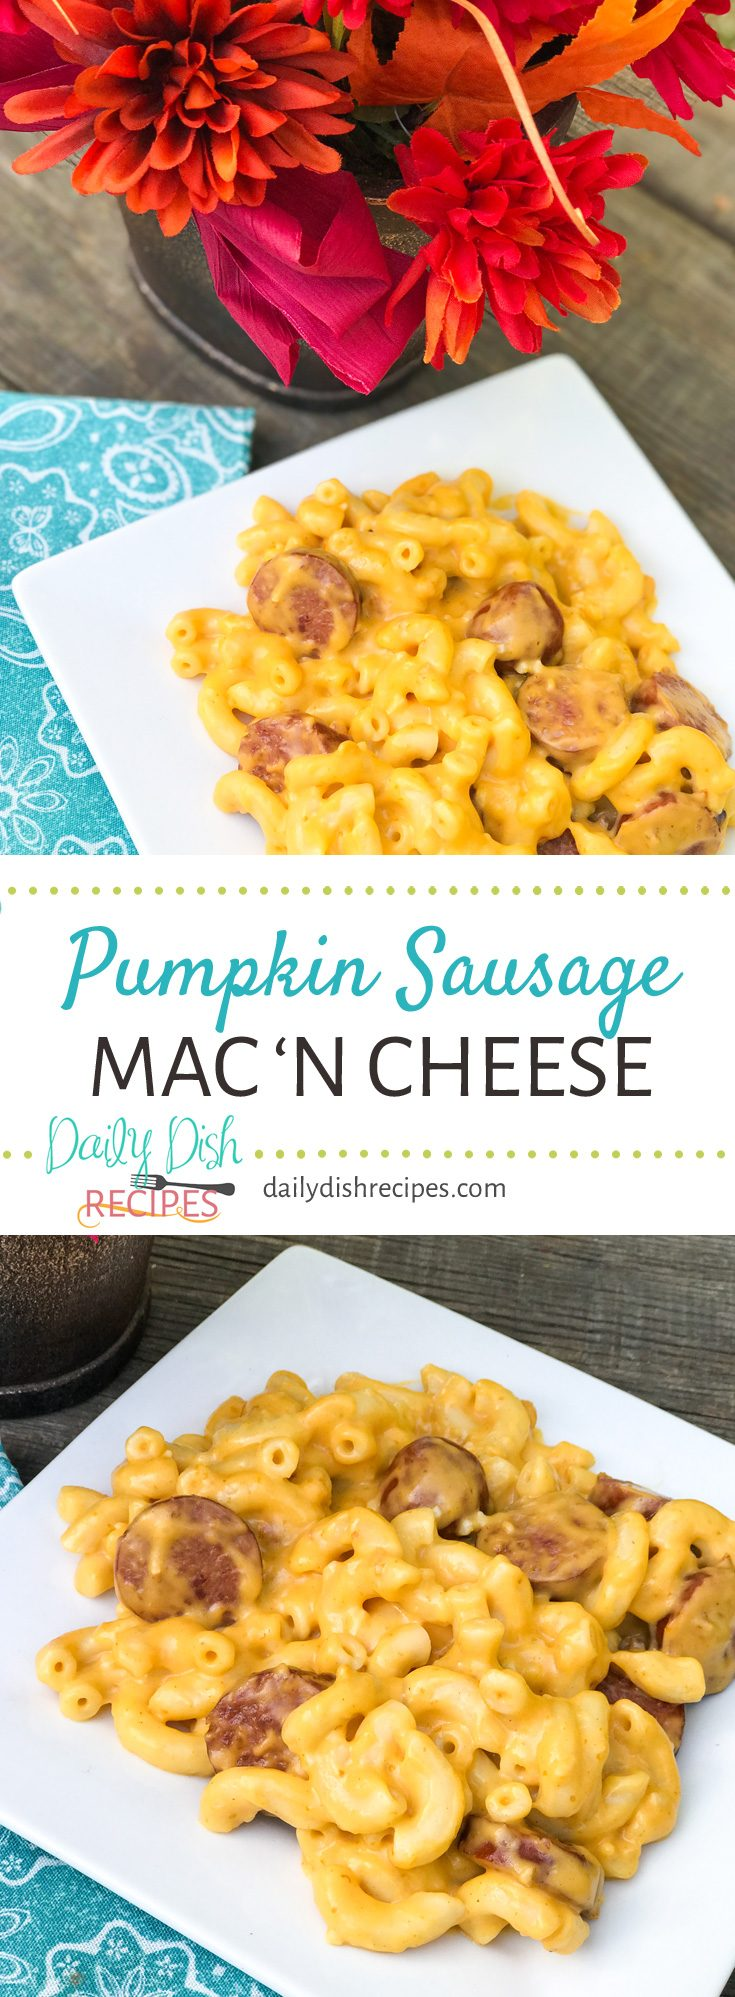 Cheesy, creamy Pumpkin Sausage Mac and Cheese has the smooth, flavorful addition of pumpkin, combined with the savory cheesy flavor of a traditional Mac and Cheese with savory sausage slices.